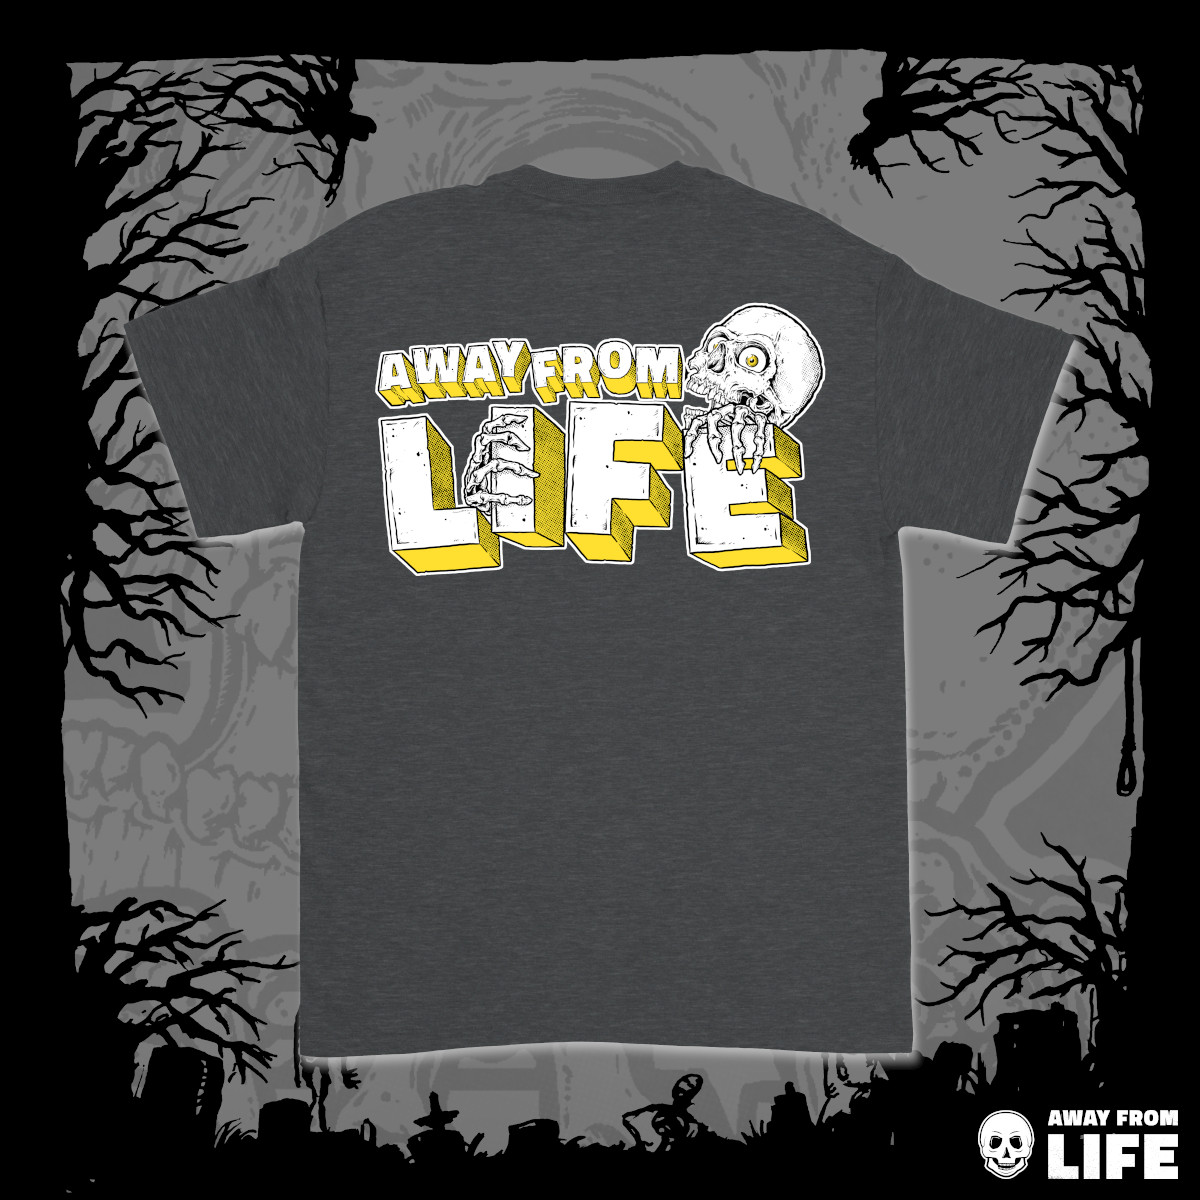 AWAY FROM LIFE - Reaper [dunkelgraues T-Shirt, Back]